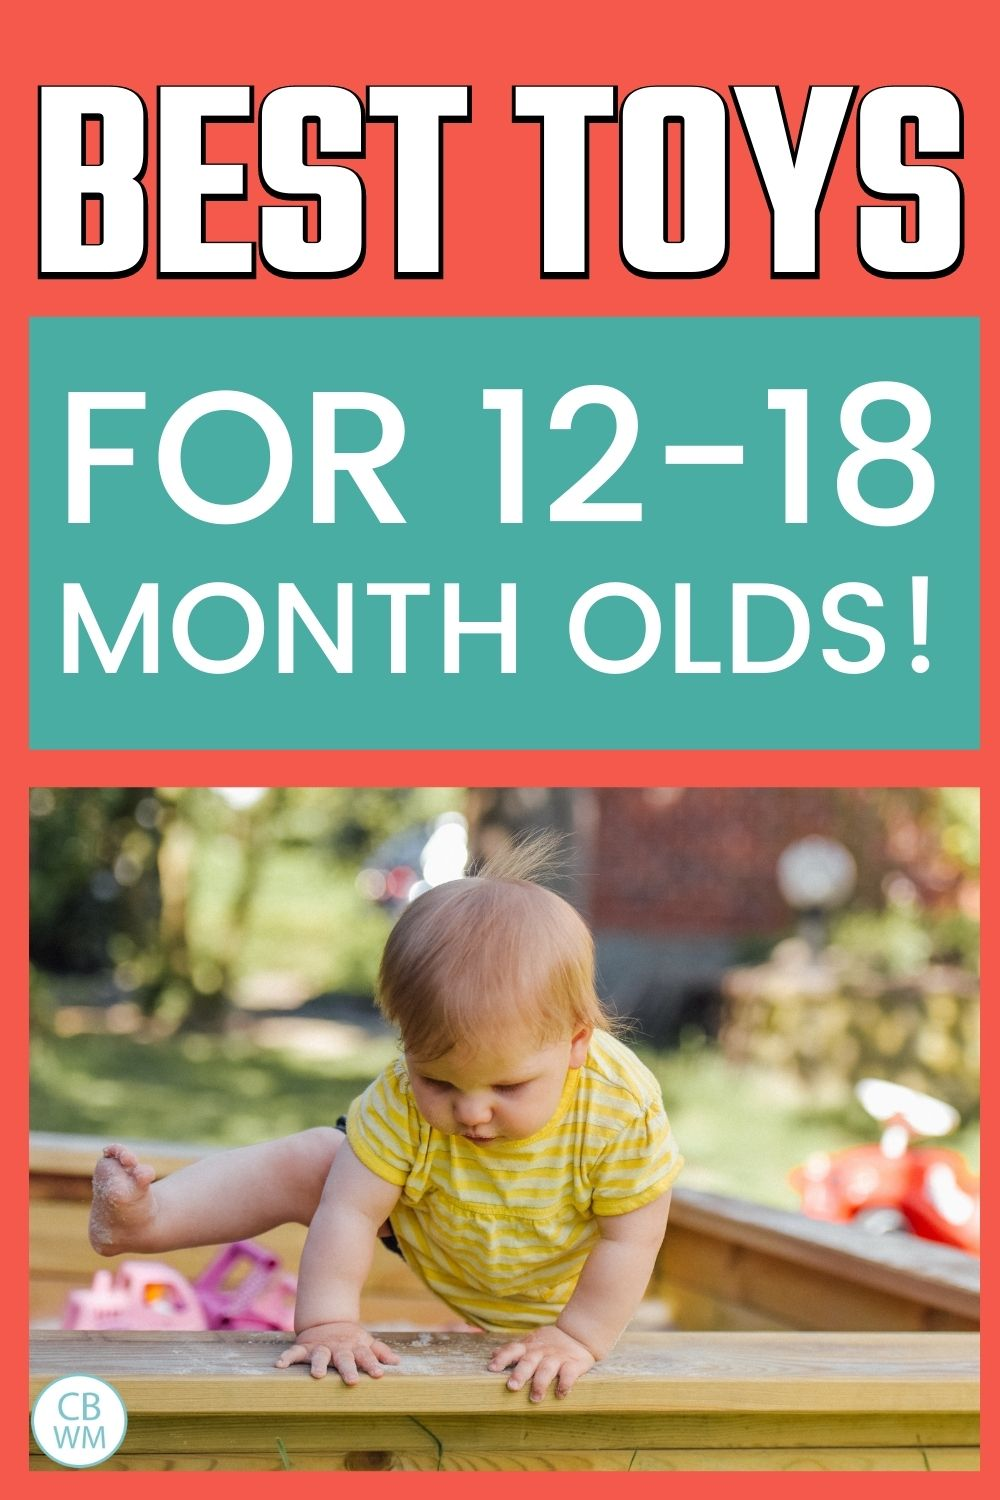 Best toys for 12-18 month olds